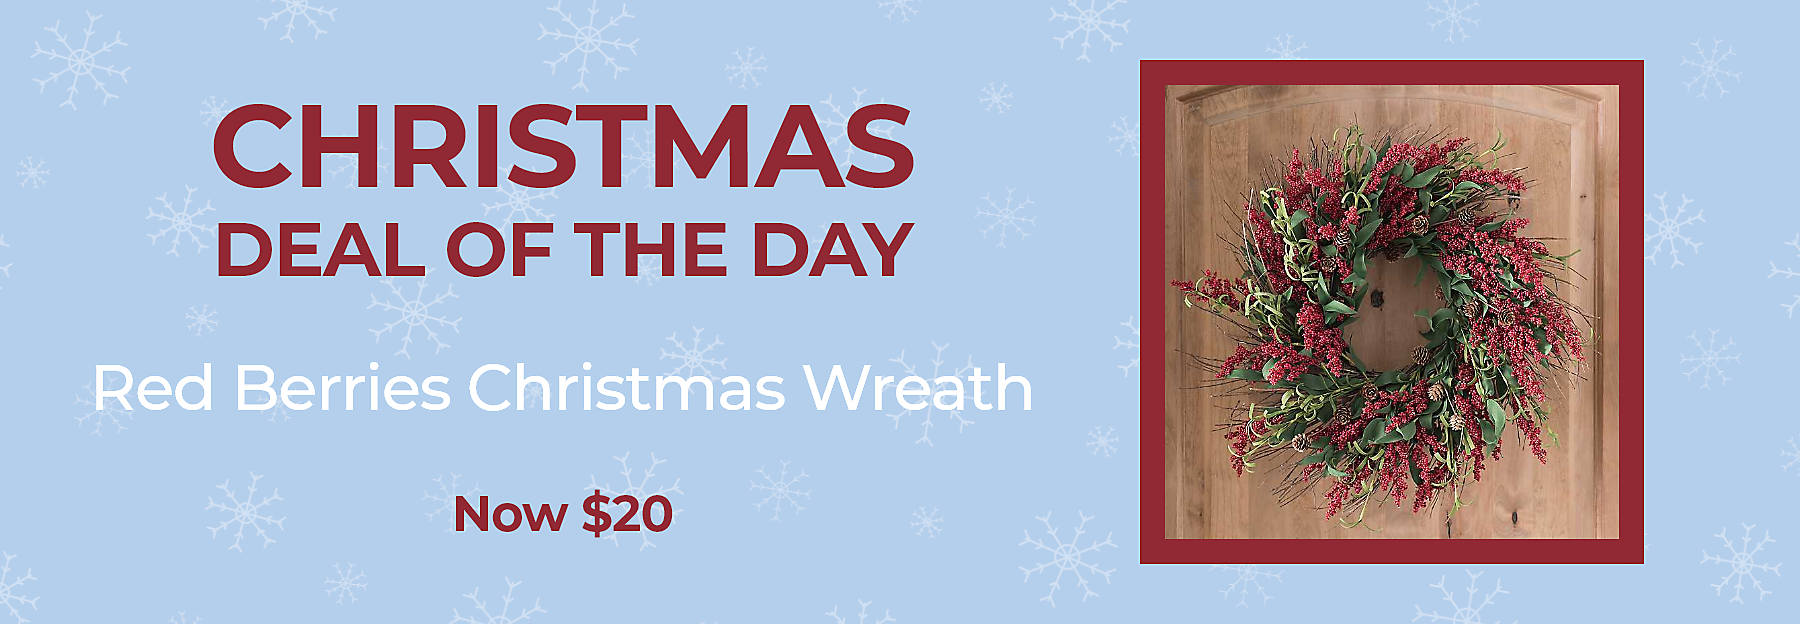 Christmas Deal of the Day Red Berries Christmas Wreath Now $20